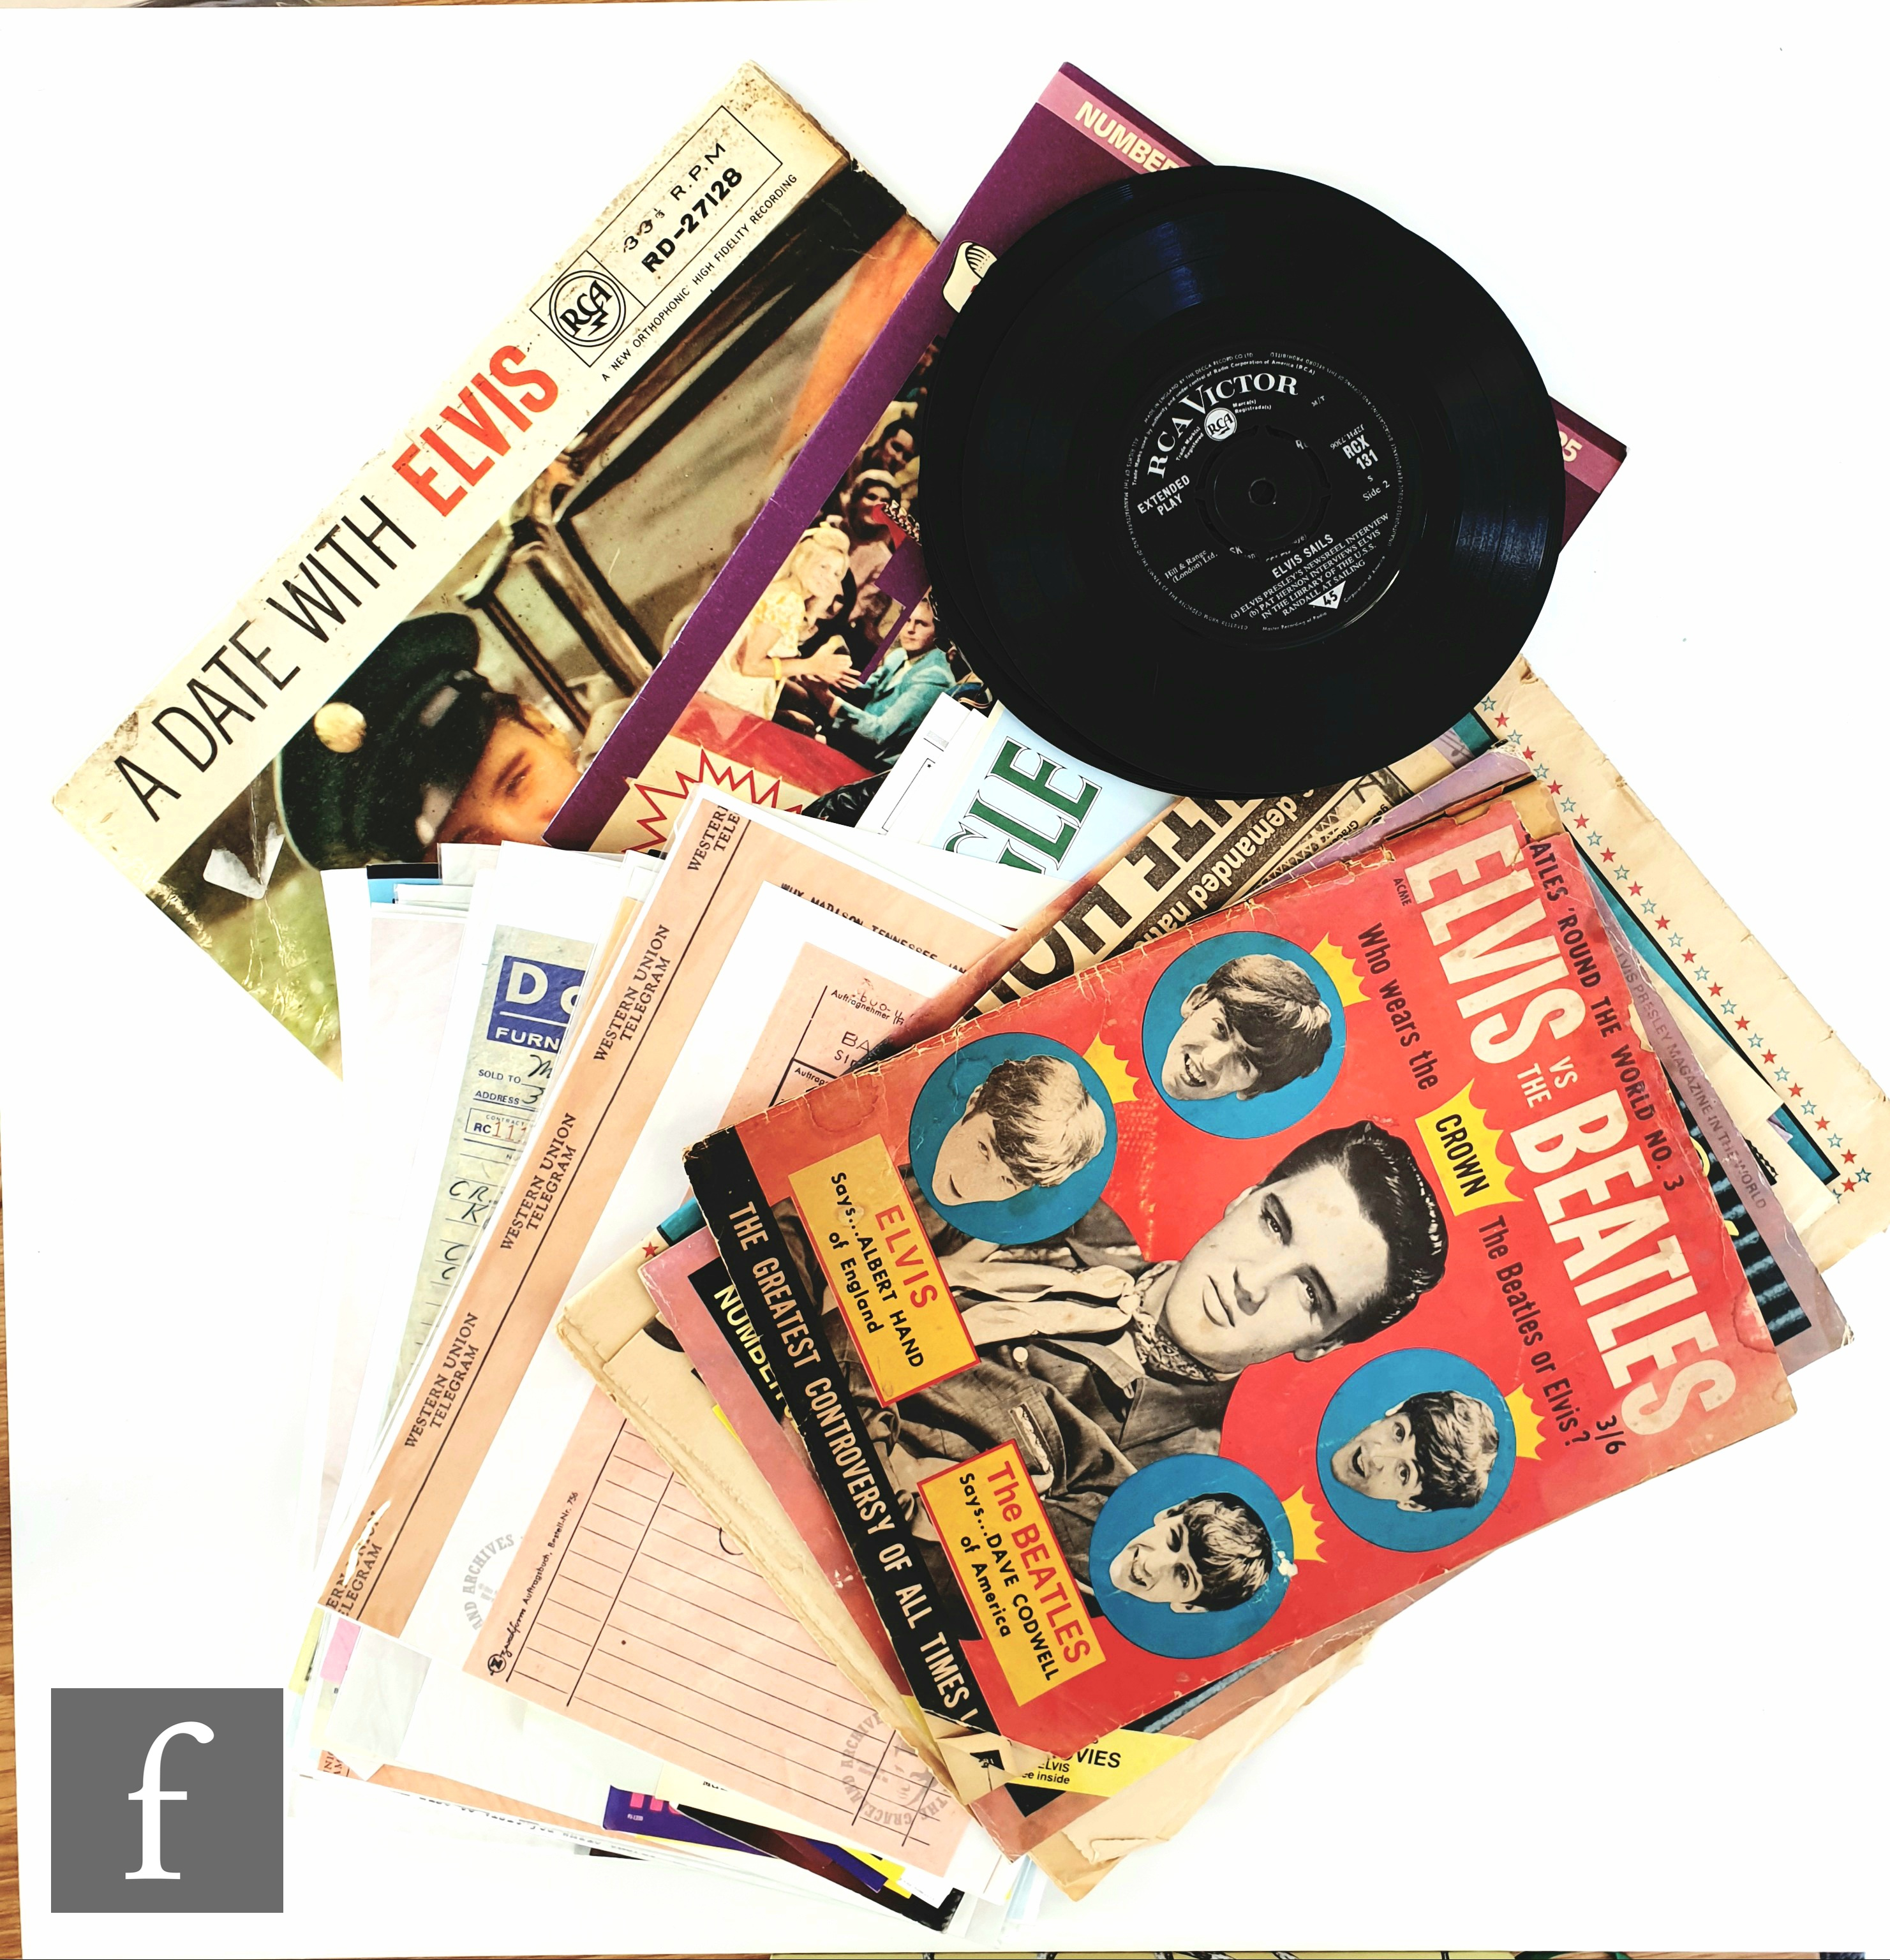 A collection of Elvis Presley related ephemera, to include a collection of reprinted documents